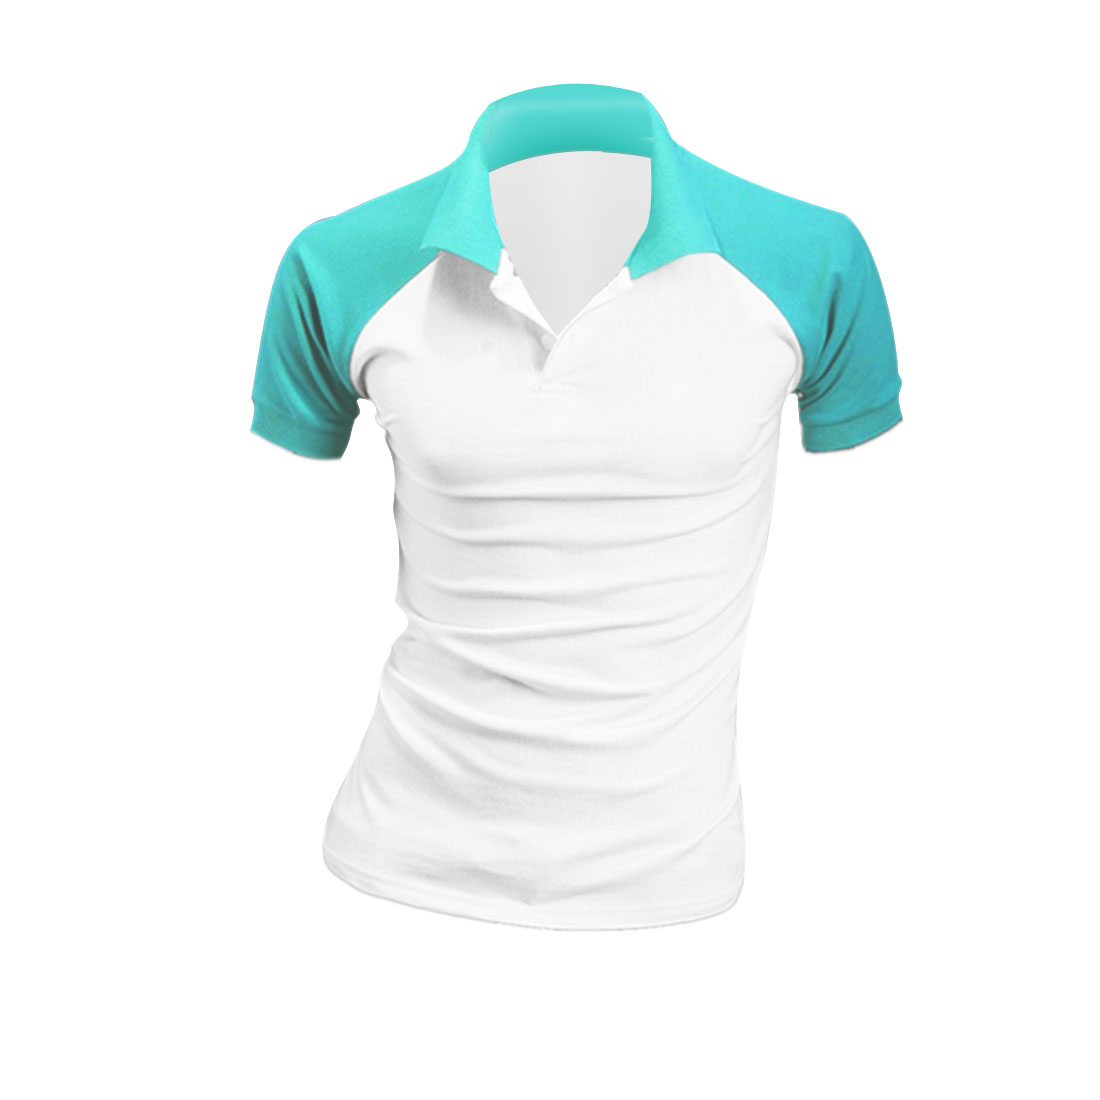 Men Convertible Collar Short Sleeve Leisure Shirt Aqua White M